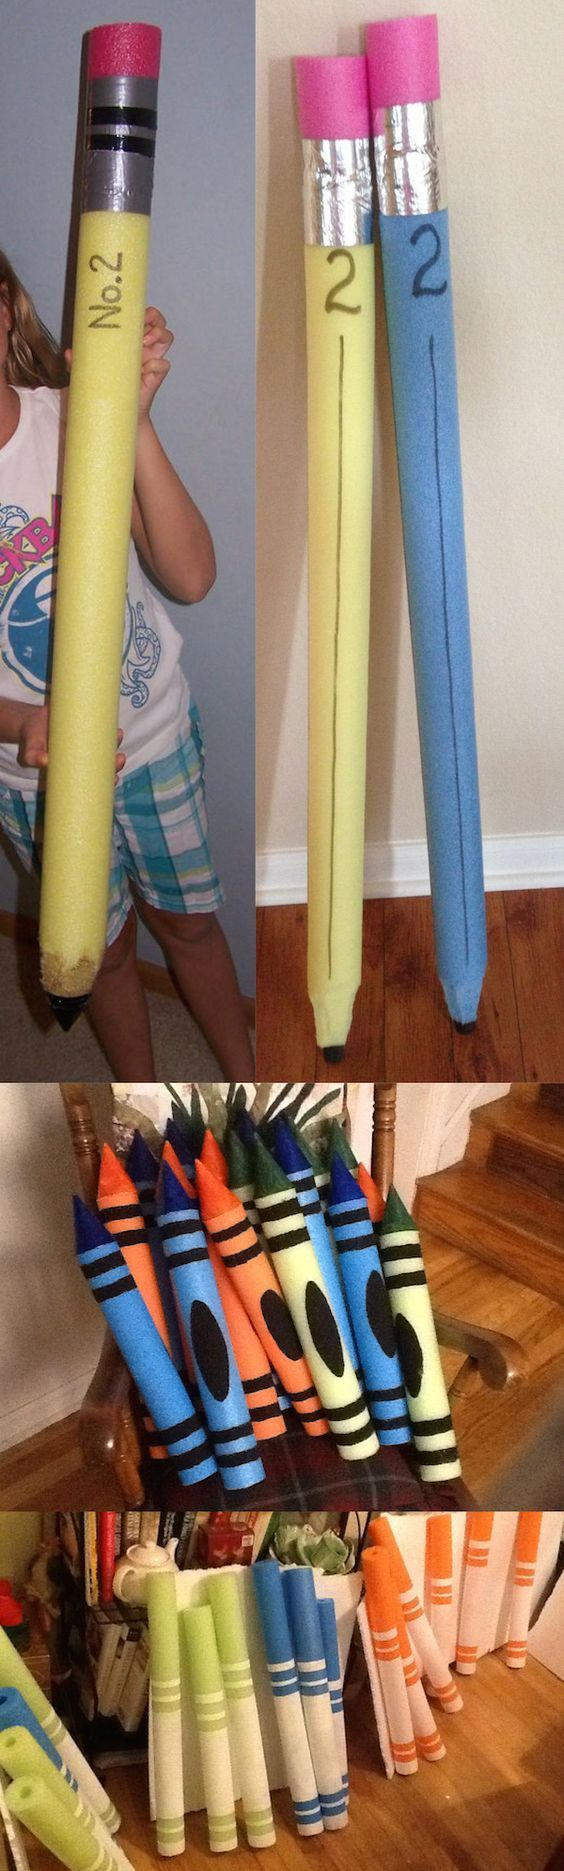 How to make GIGANTIC pencils, crayons, and markers with pool noodles!  These are perfect for back to school pictures, classroom decorations, parties, and so much more.